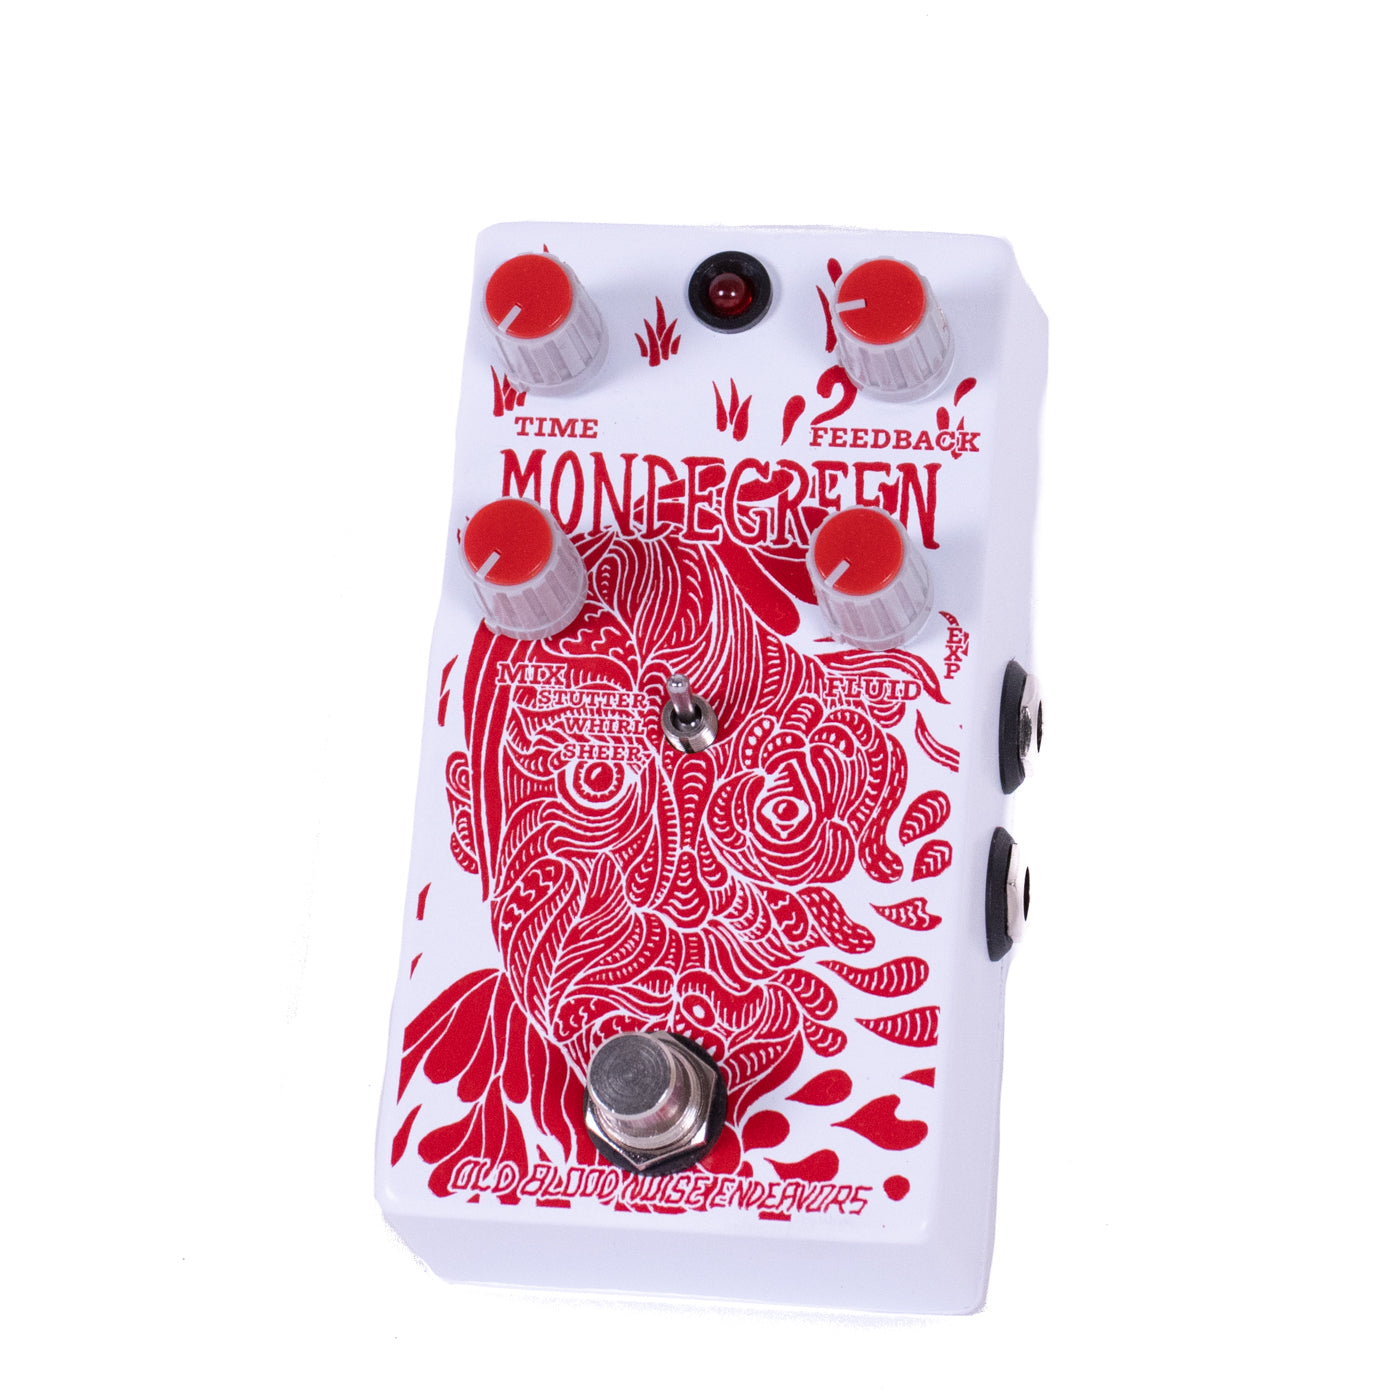 New Old Blood Noise Endeavors Mondegreen Delay image 2